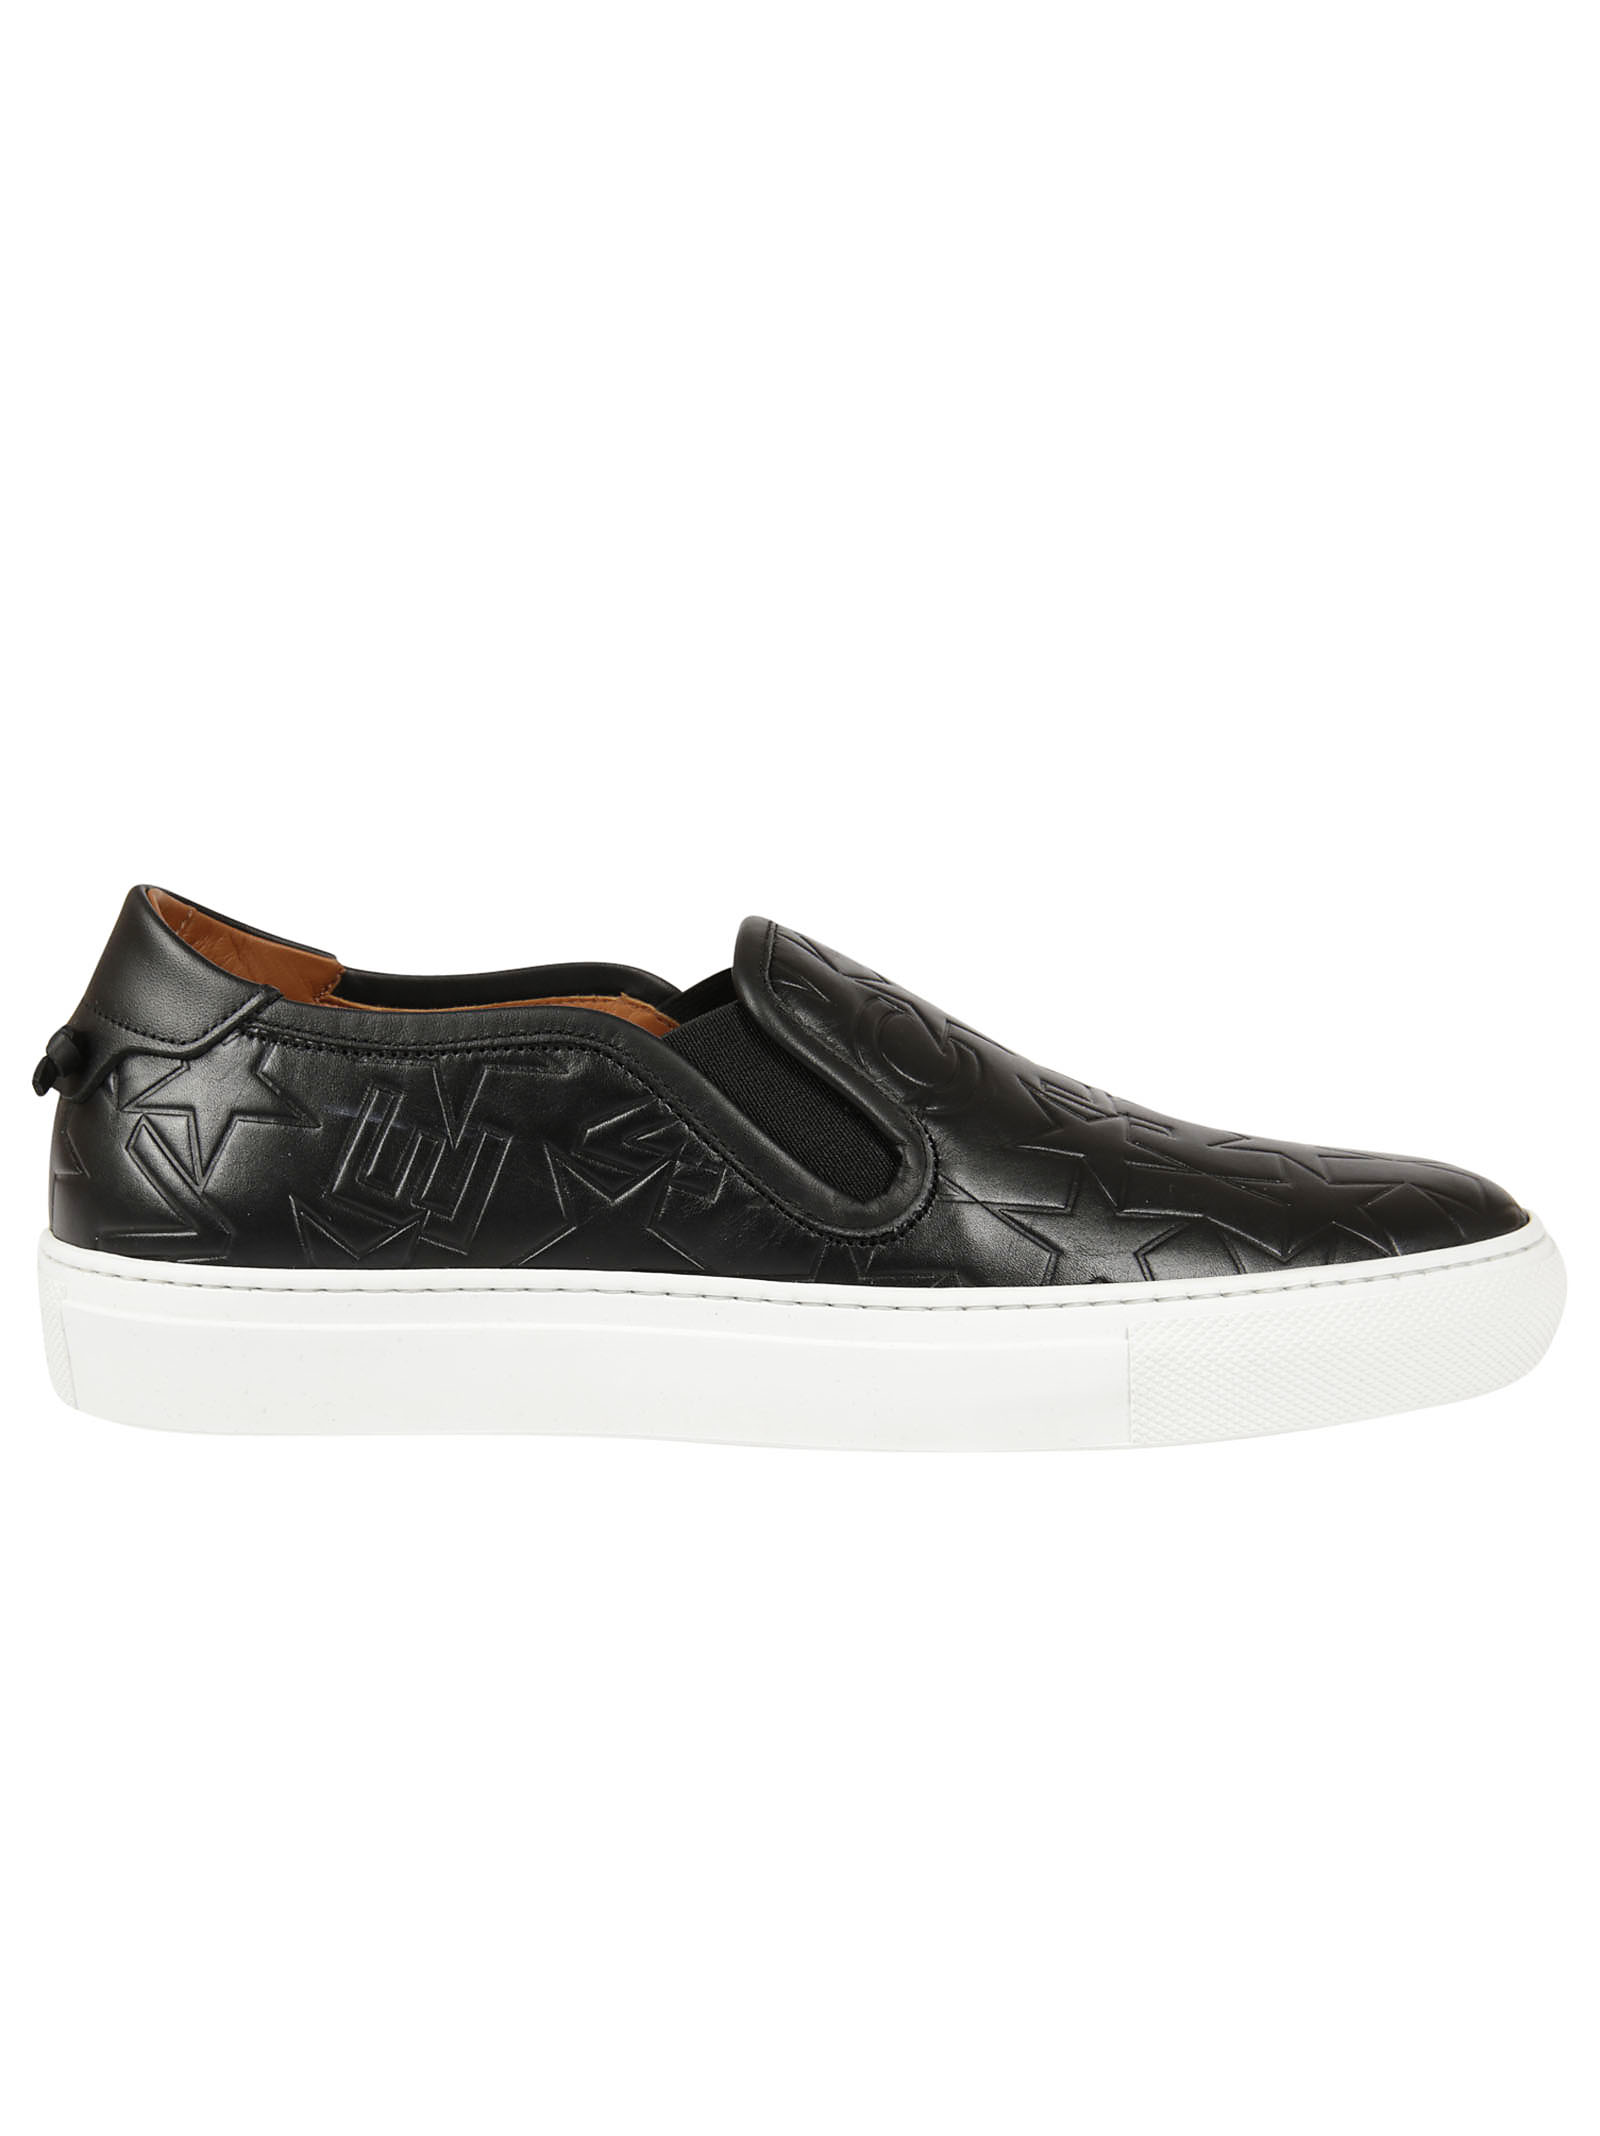 Givenchy Givenchy Studded Slip-On Sneakers